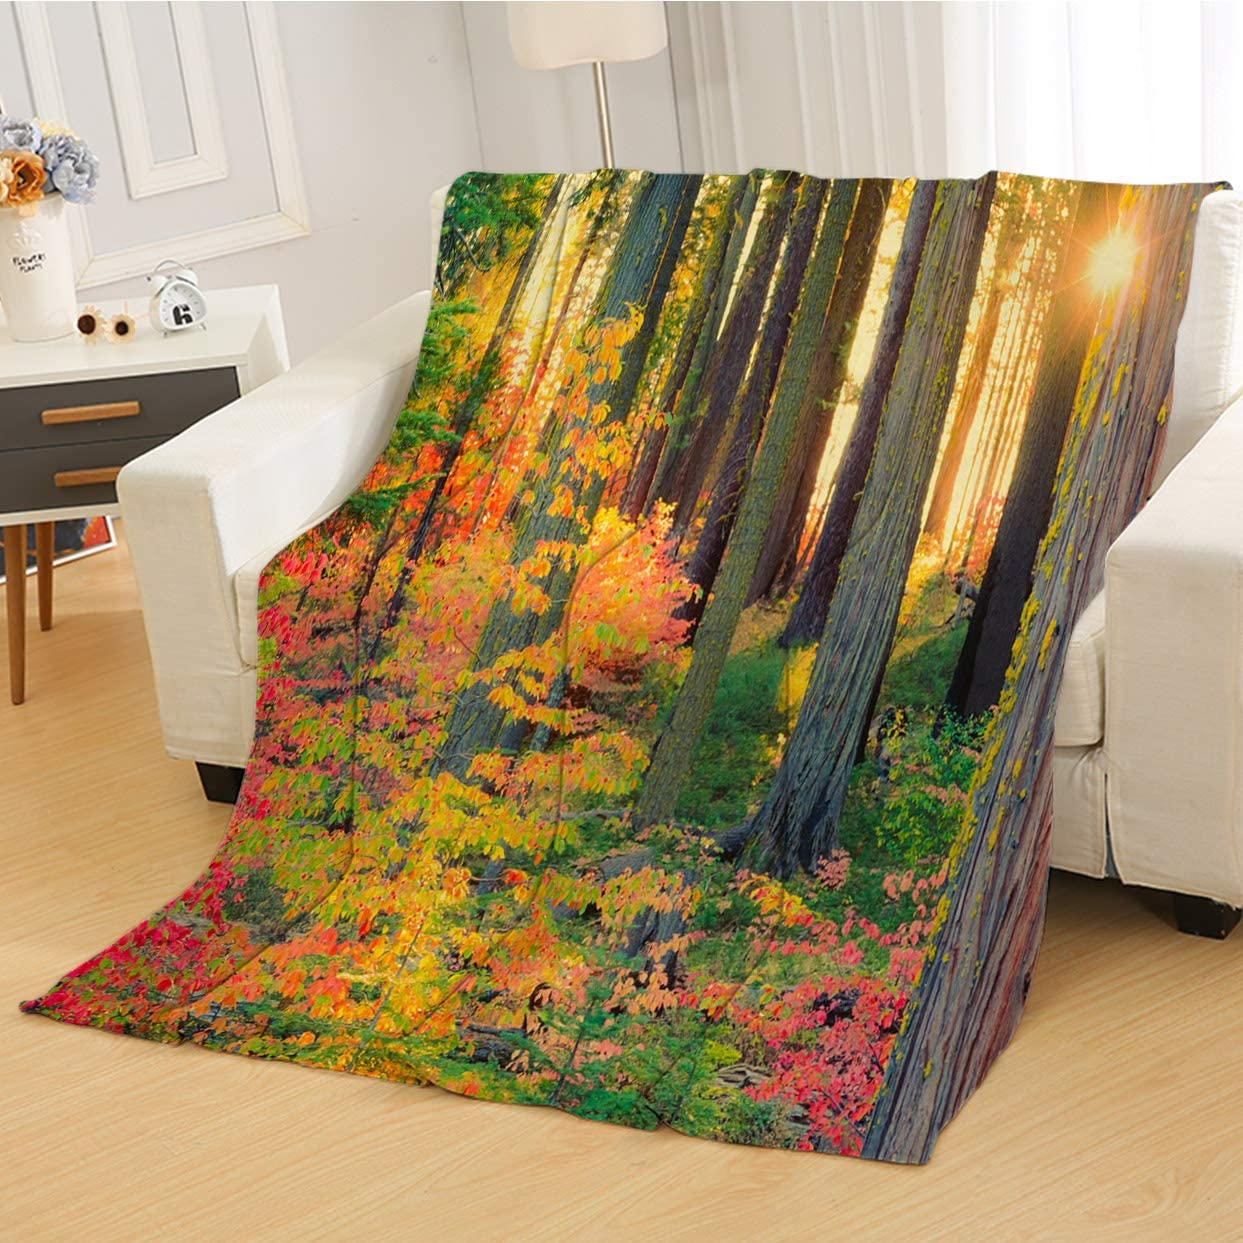 Amazon Com Rldsess Sun Warm Baby Blanket Soft Weighted Blanket Sun Bursts Through Autumn Forest In Yosemite P Super Soft Blanketry For Bed Couch Baby Size 31wx47l Inch Home Kitchen